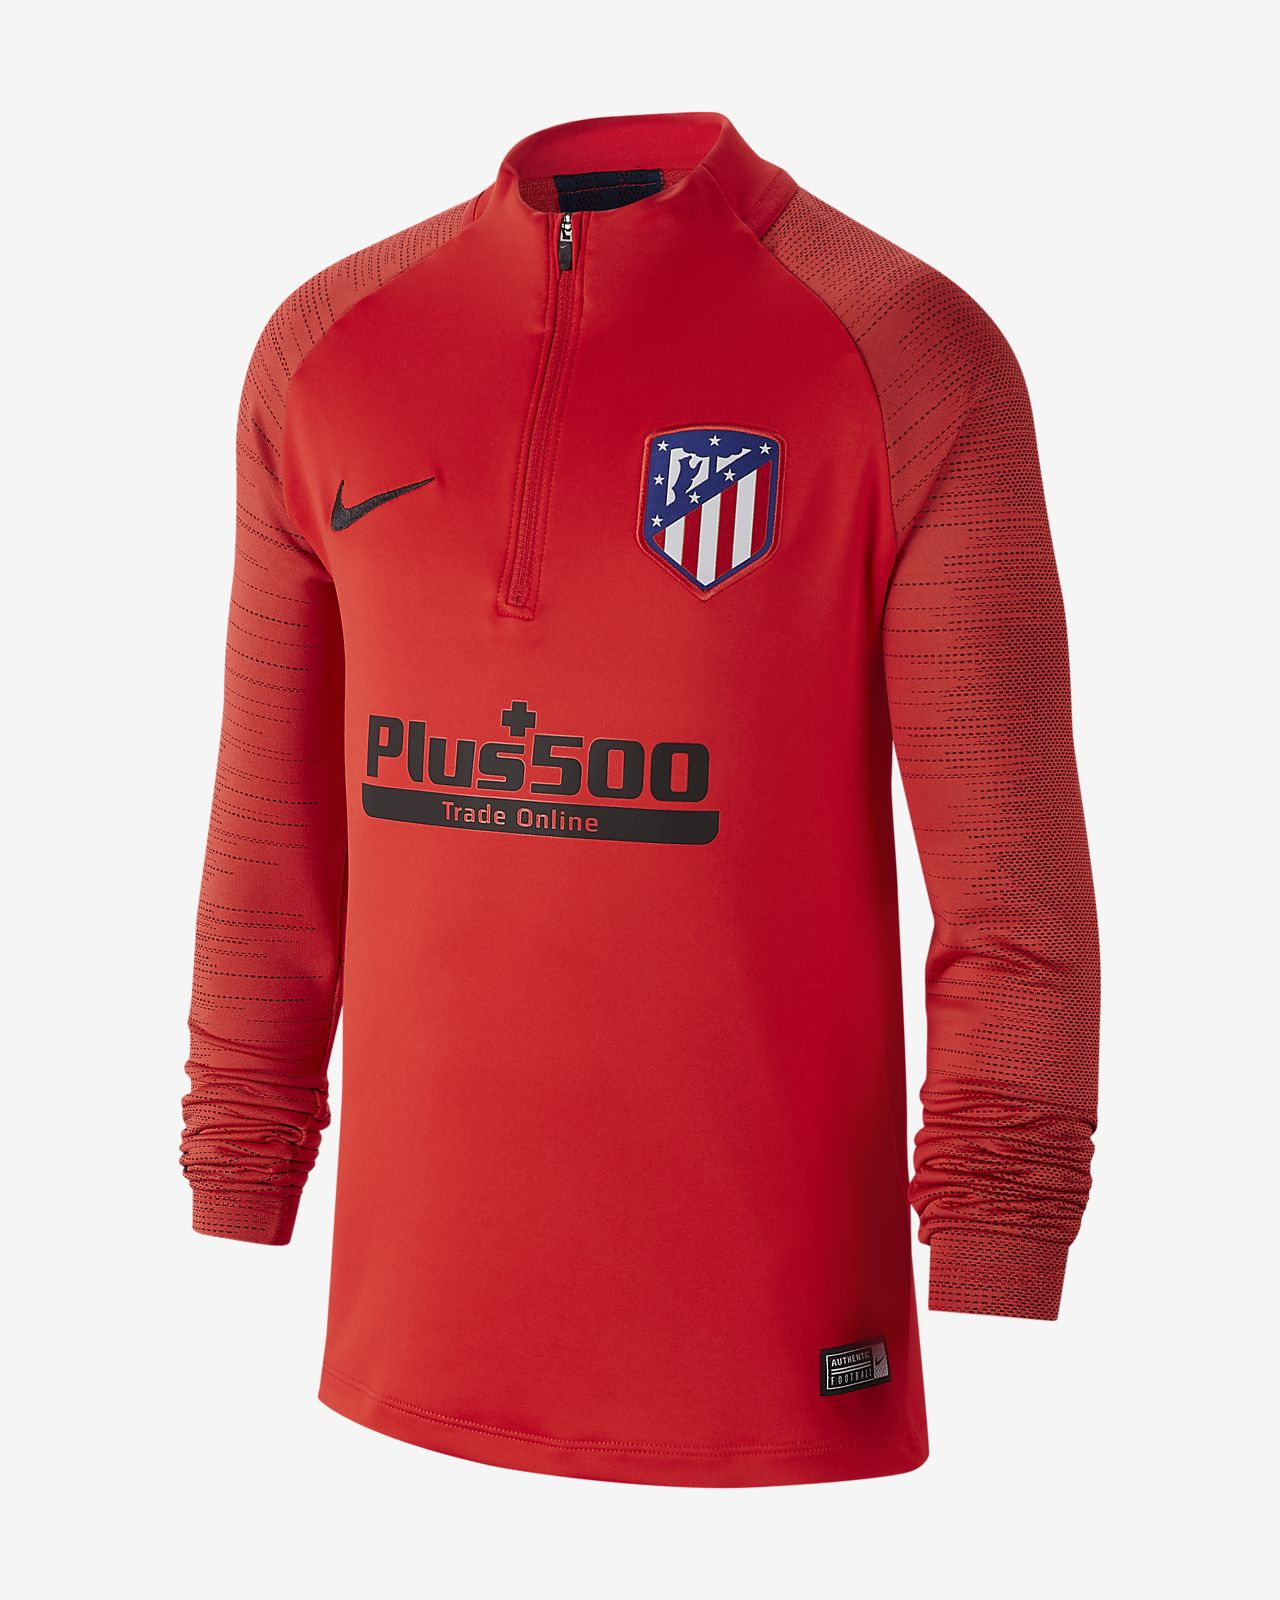 Haut de football Nike Dri-FIT Atlético de Madrid Strike pour Enfant plus âgé